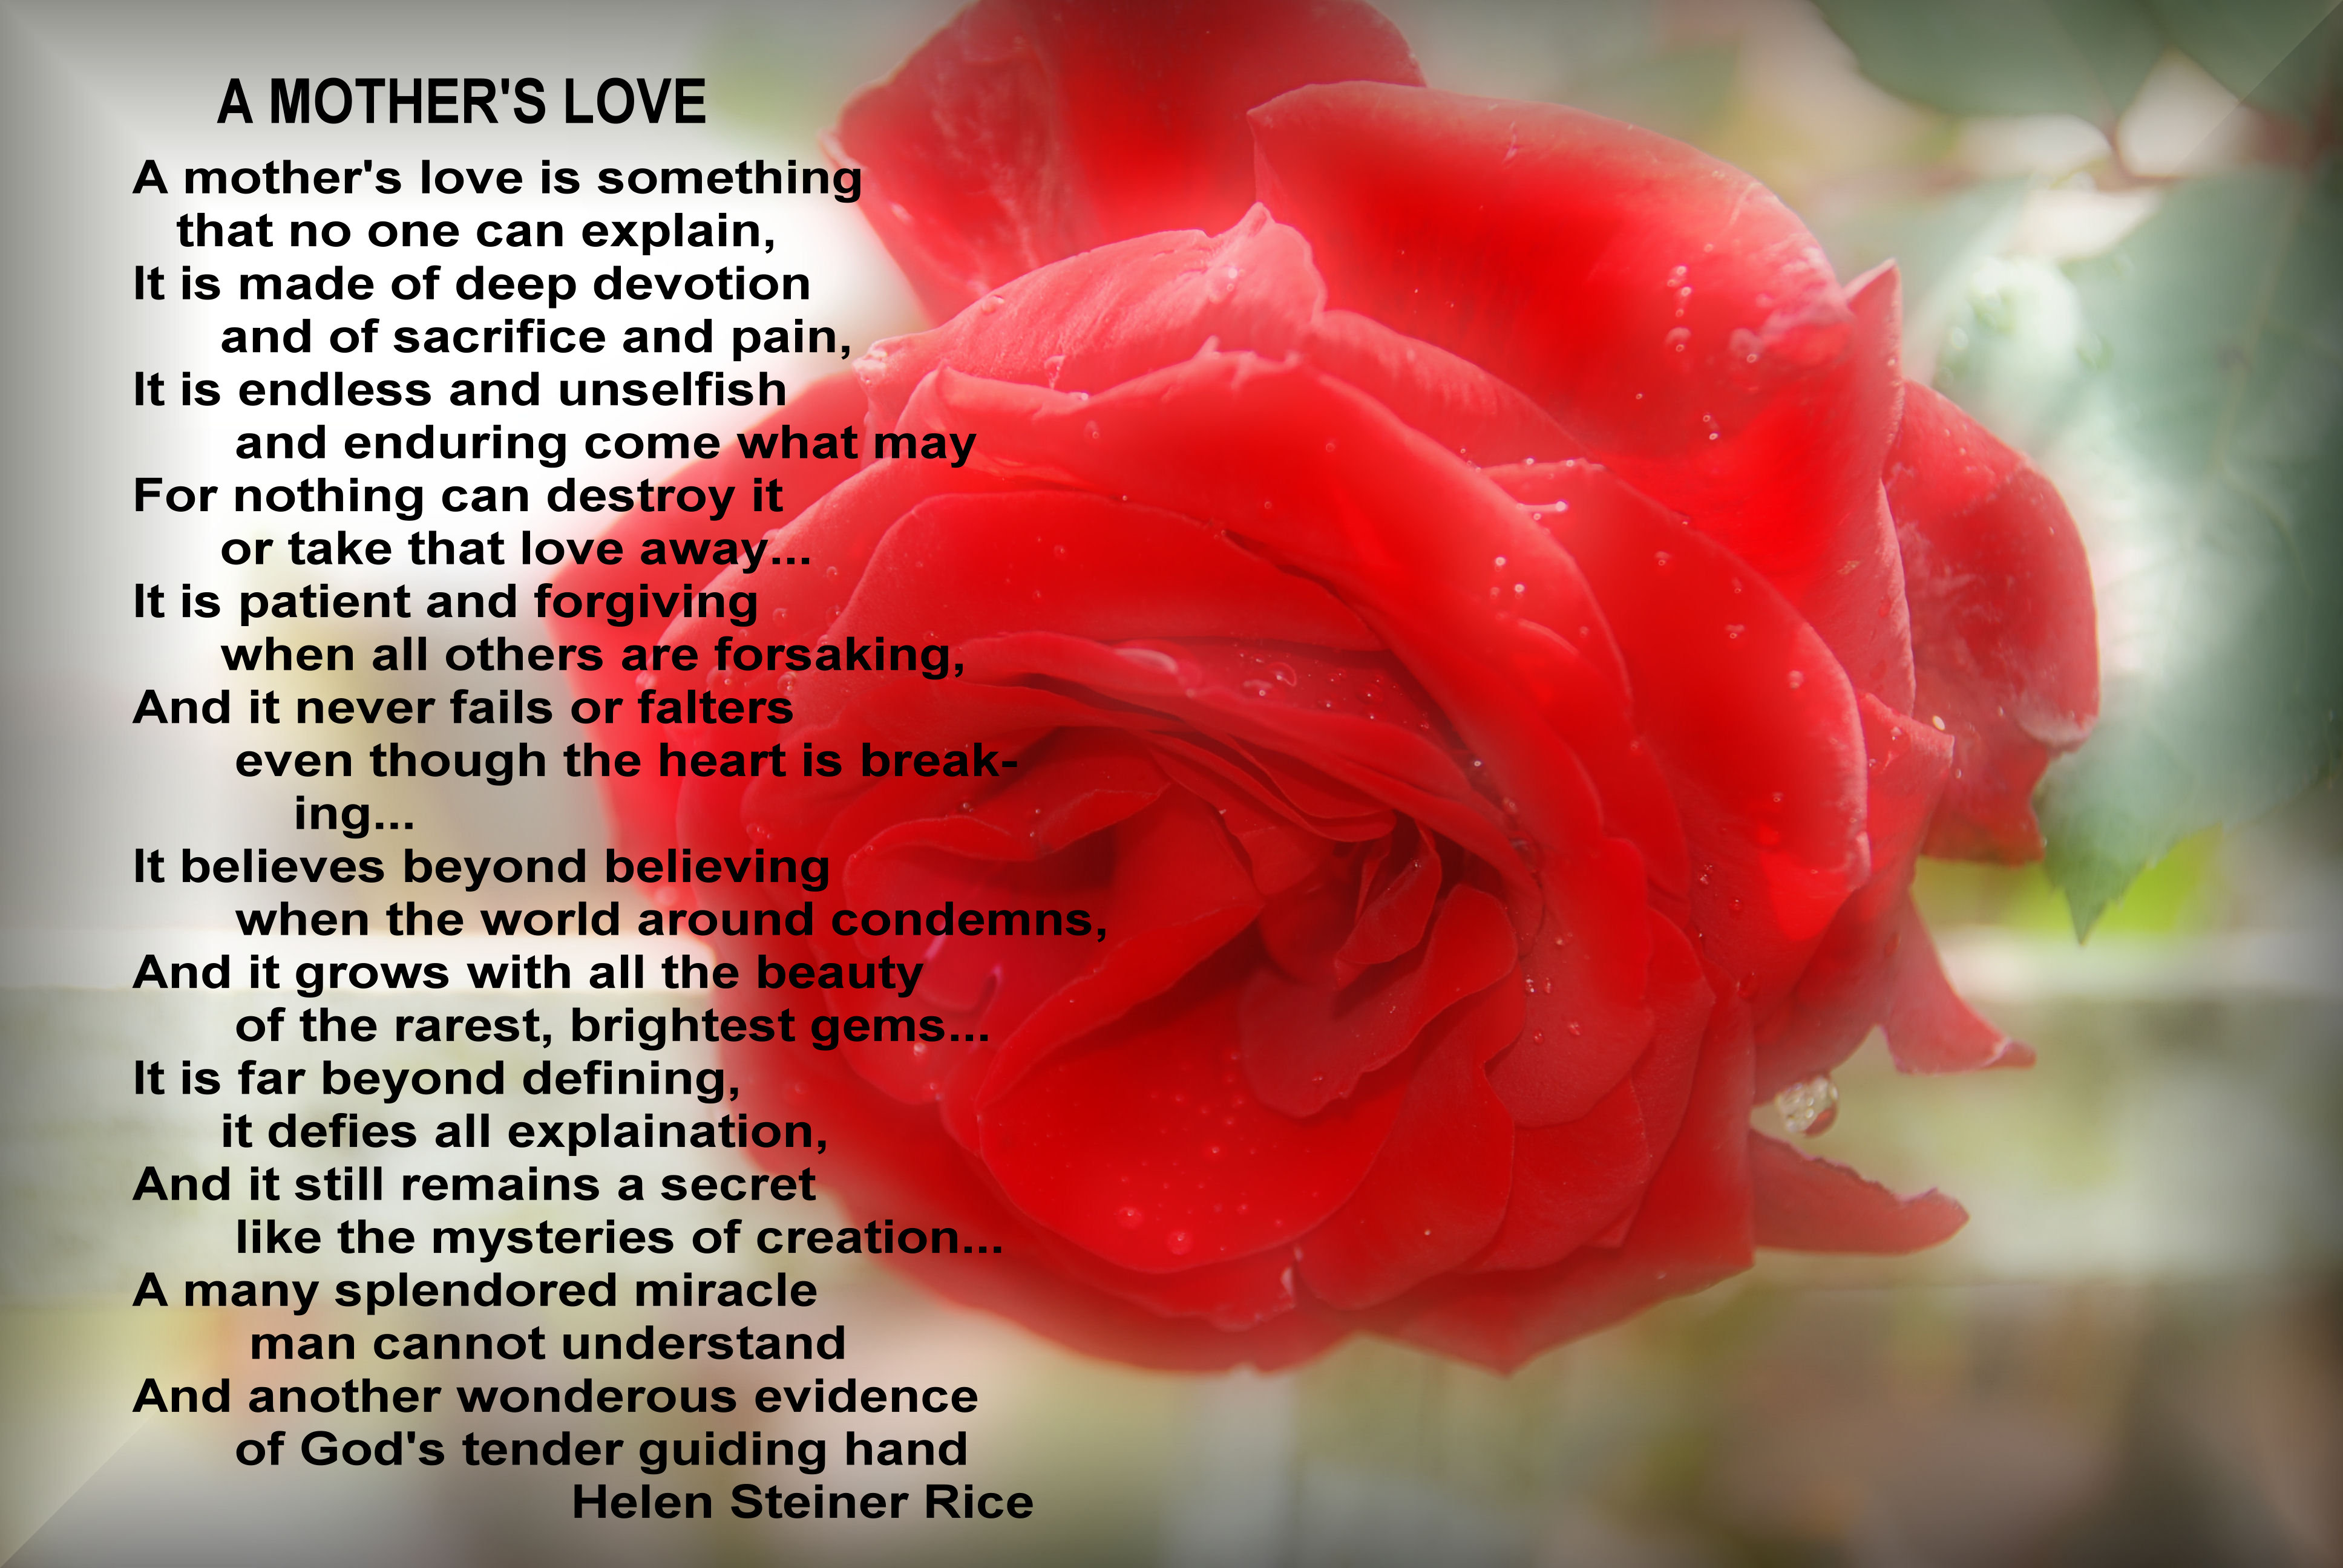 HAPPY MOTHER'S DAY! Poem, 'A MOTHER'S LOVE' by Helen Steiner Rice ...